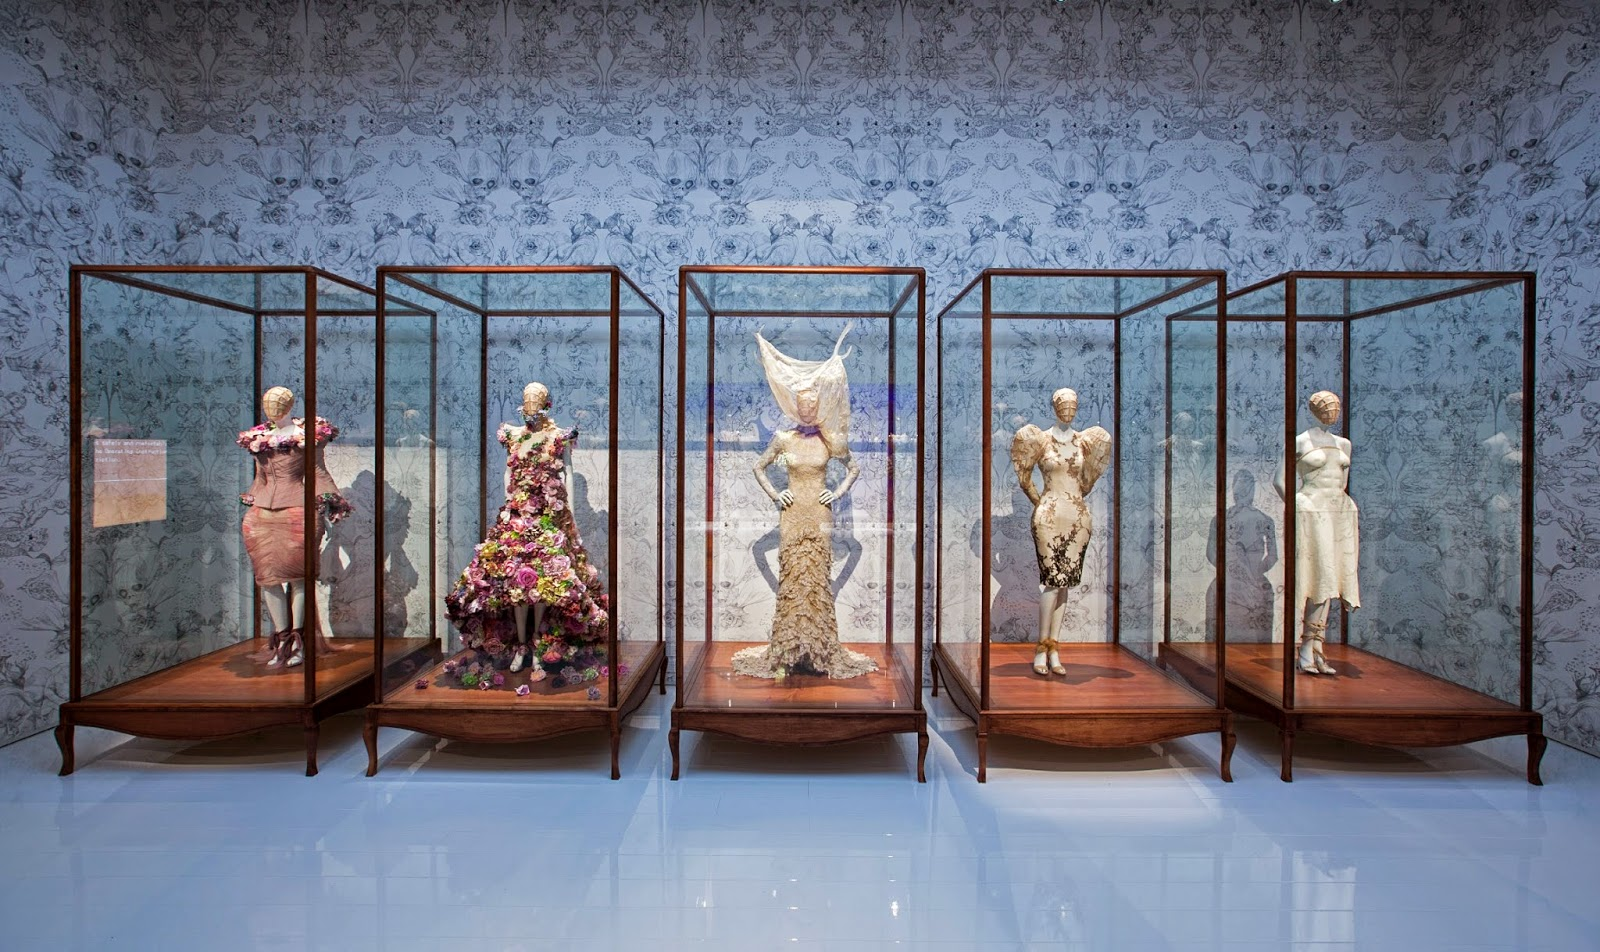 Installation view of Romantic Naturalism gallery Alexander McQueen Savage Beauty at the Victoria and Albert Museum London